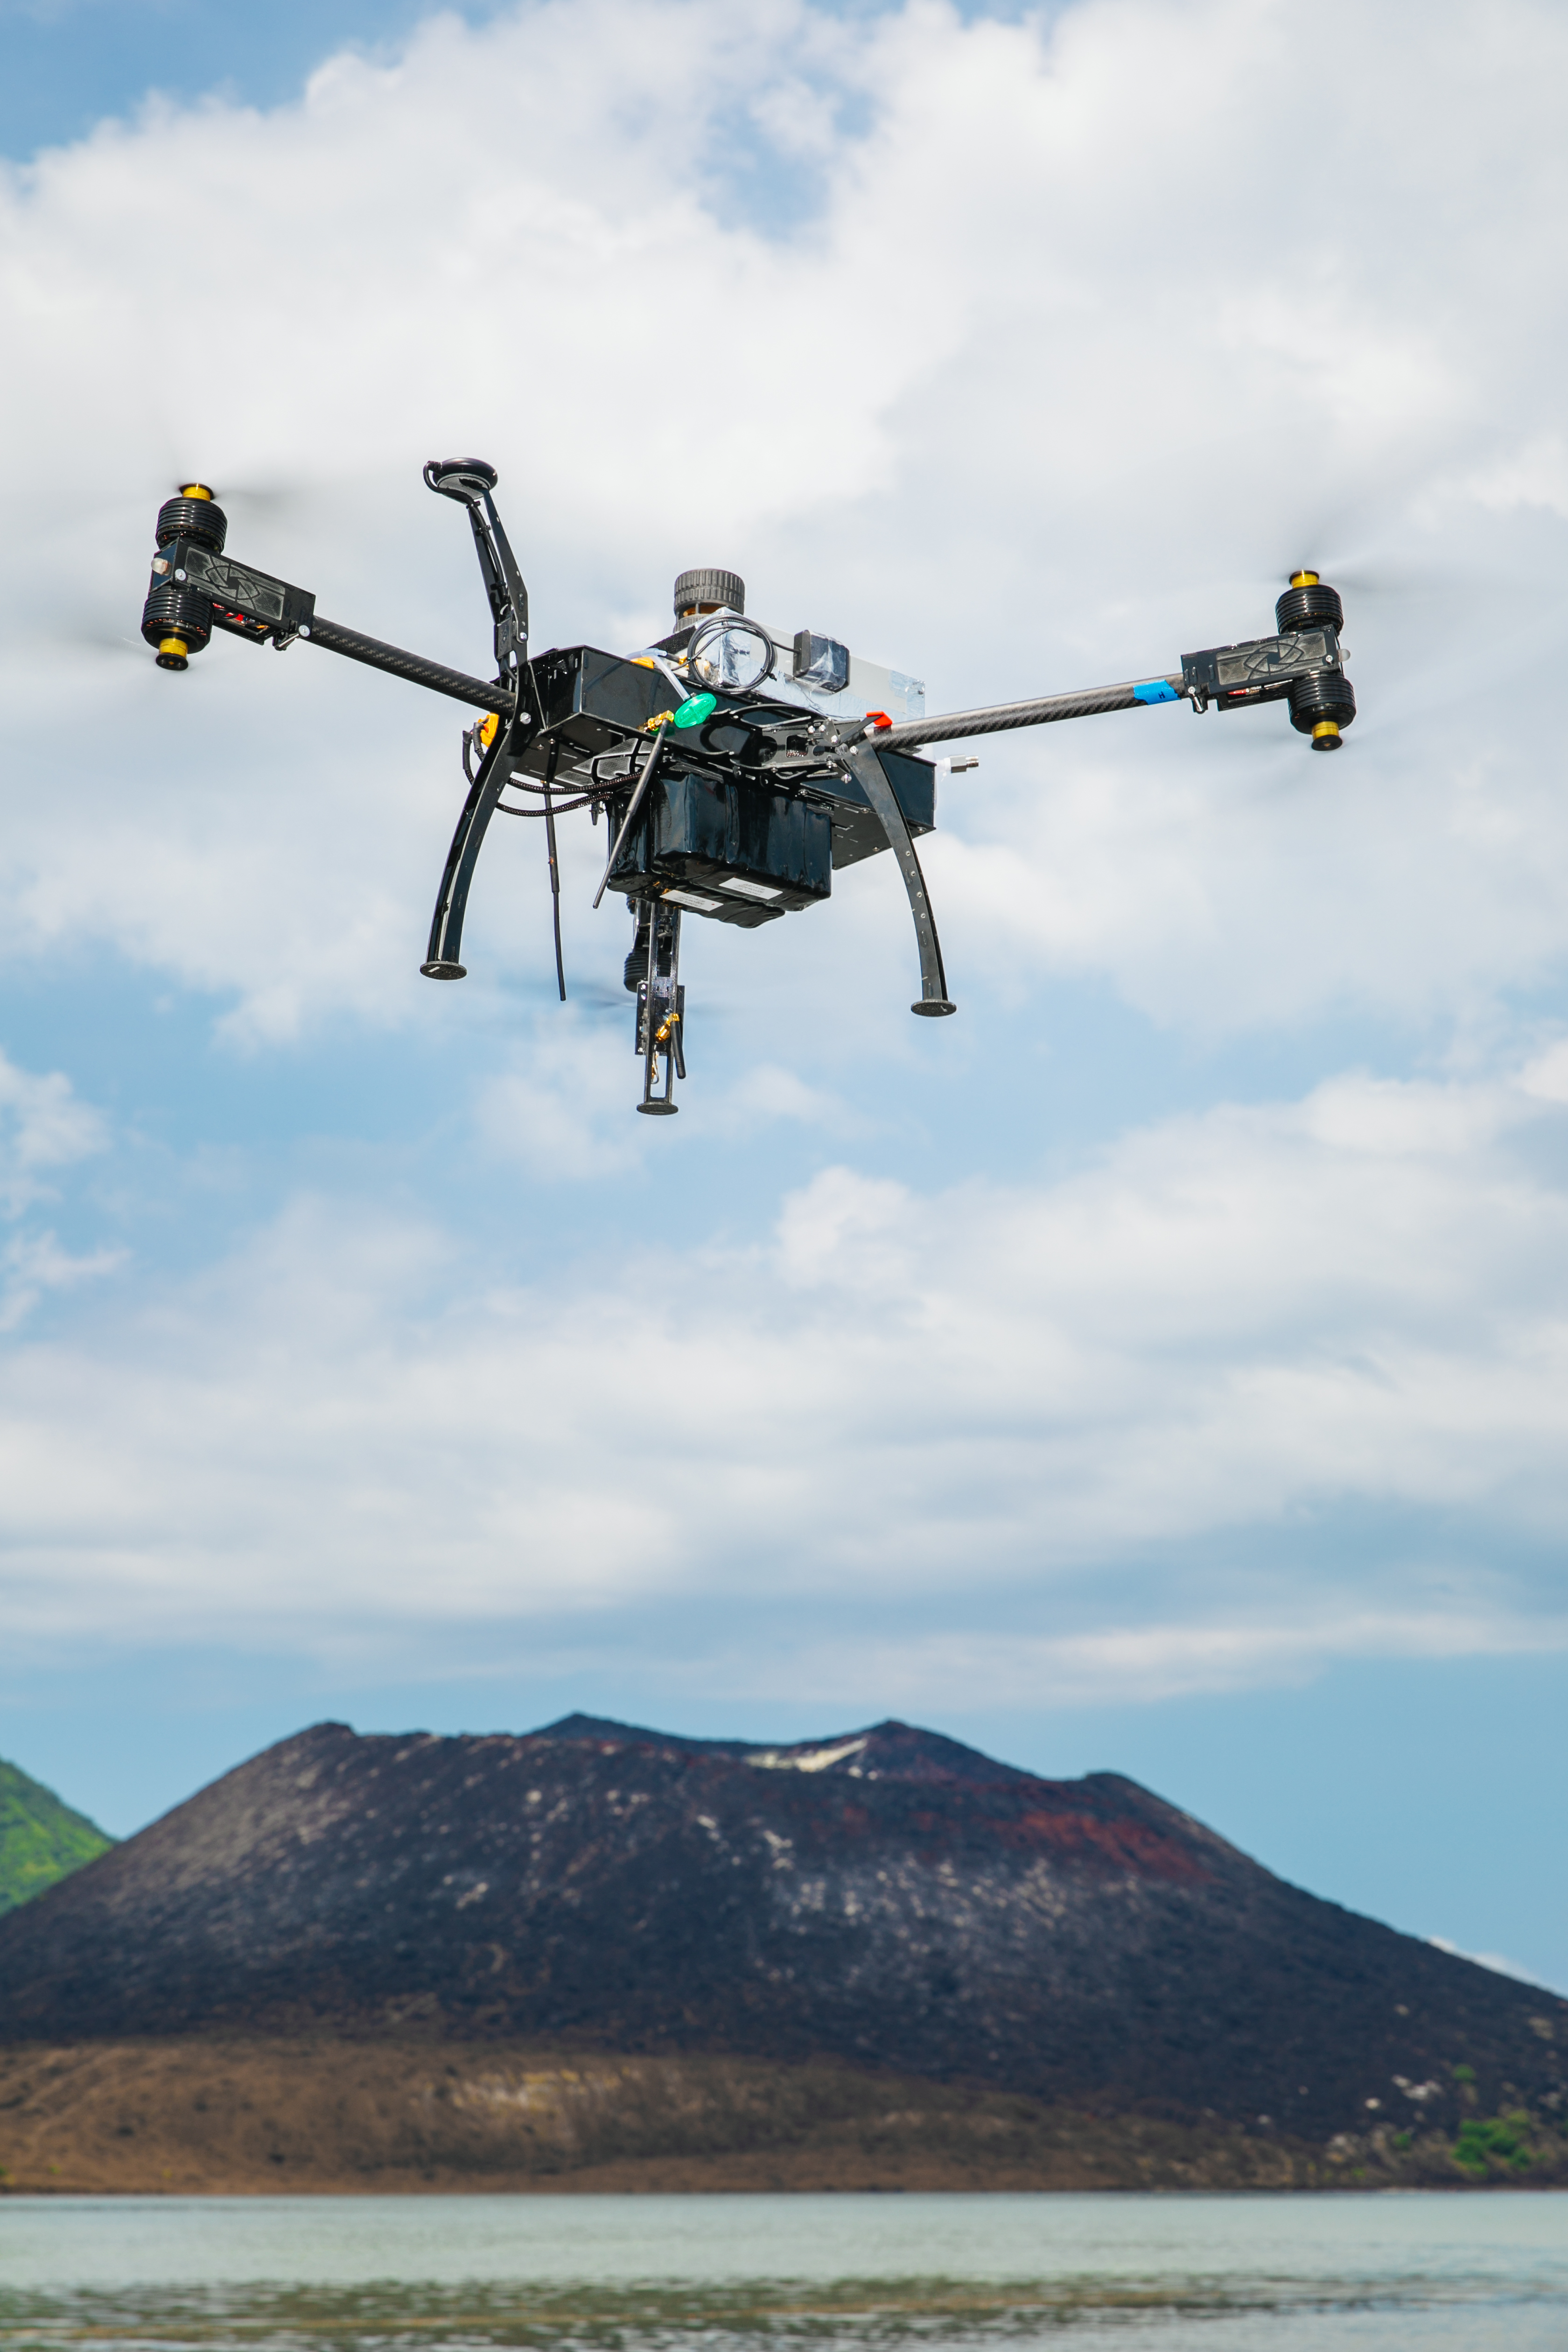 Photograph by Matthew Wordell of drone over a volcano